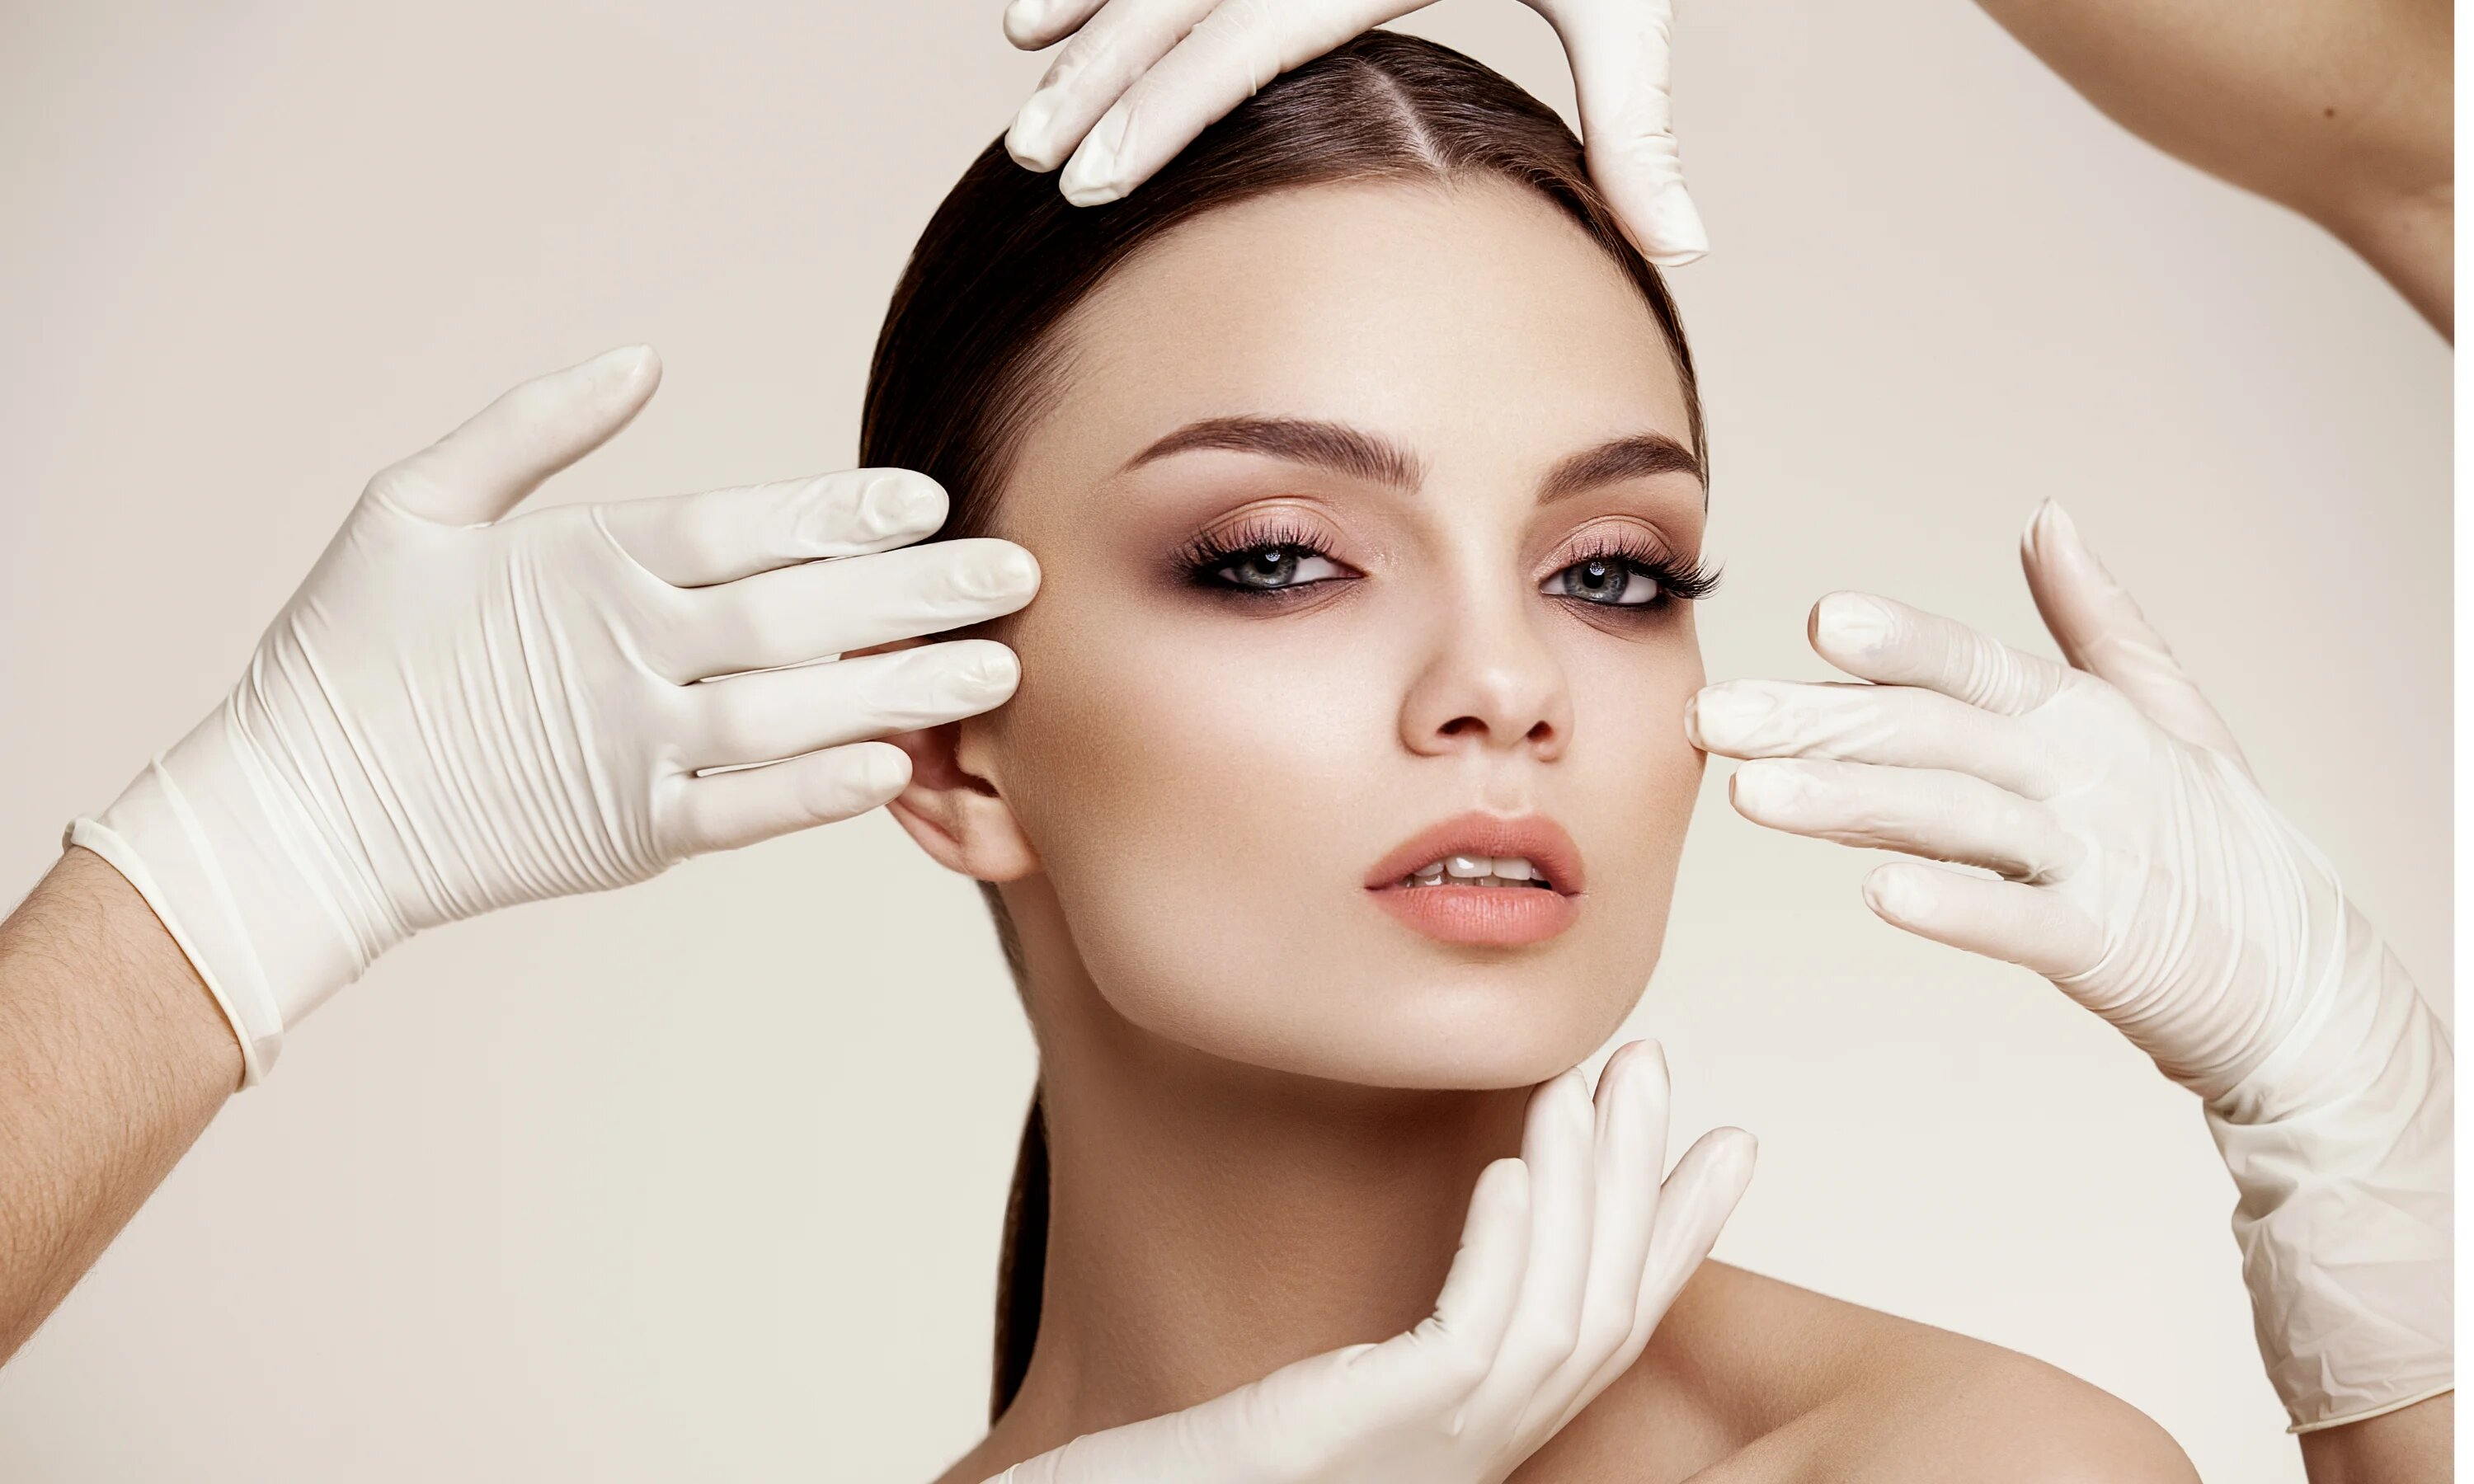 Female model surrounded by multiple hands wearing surgical gloves